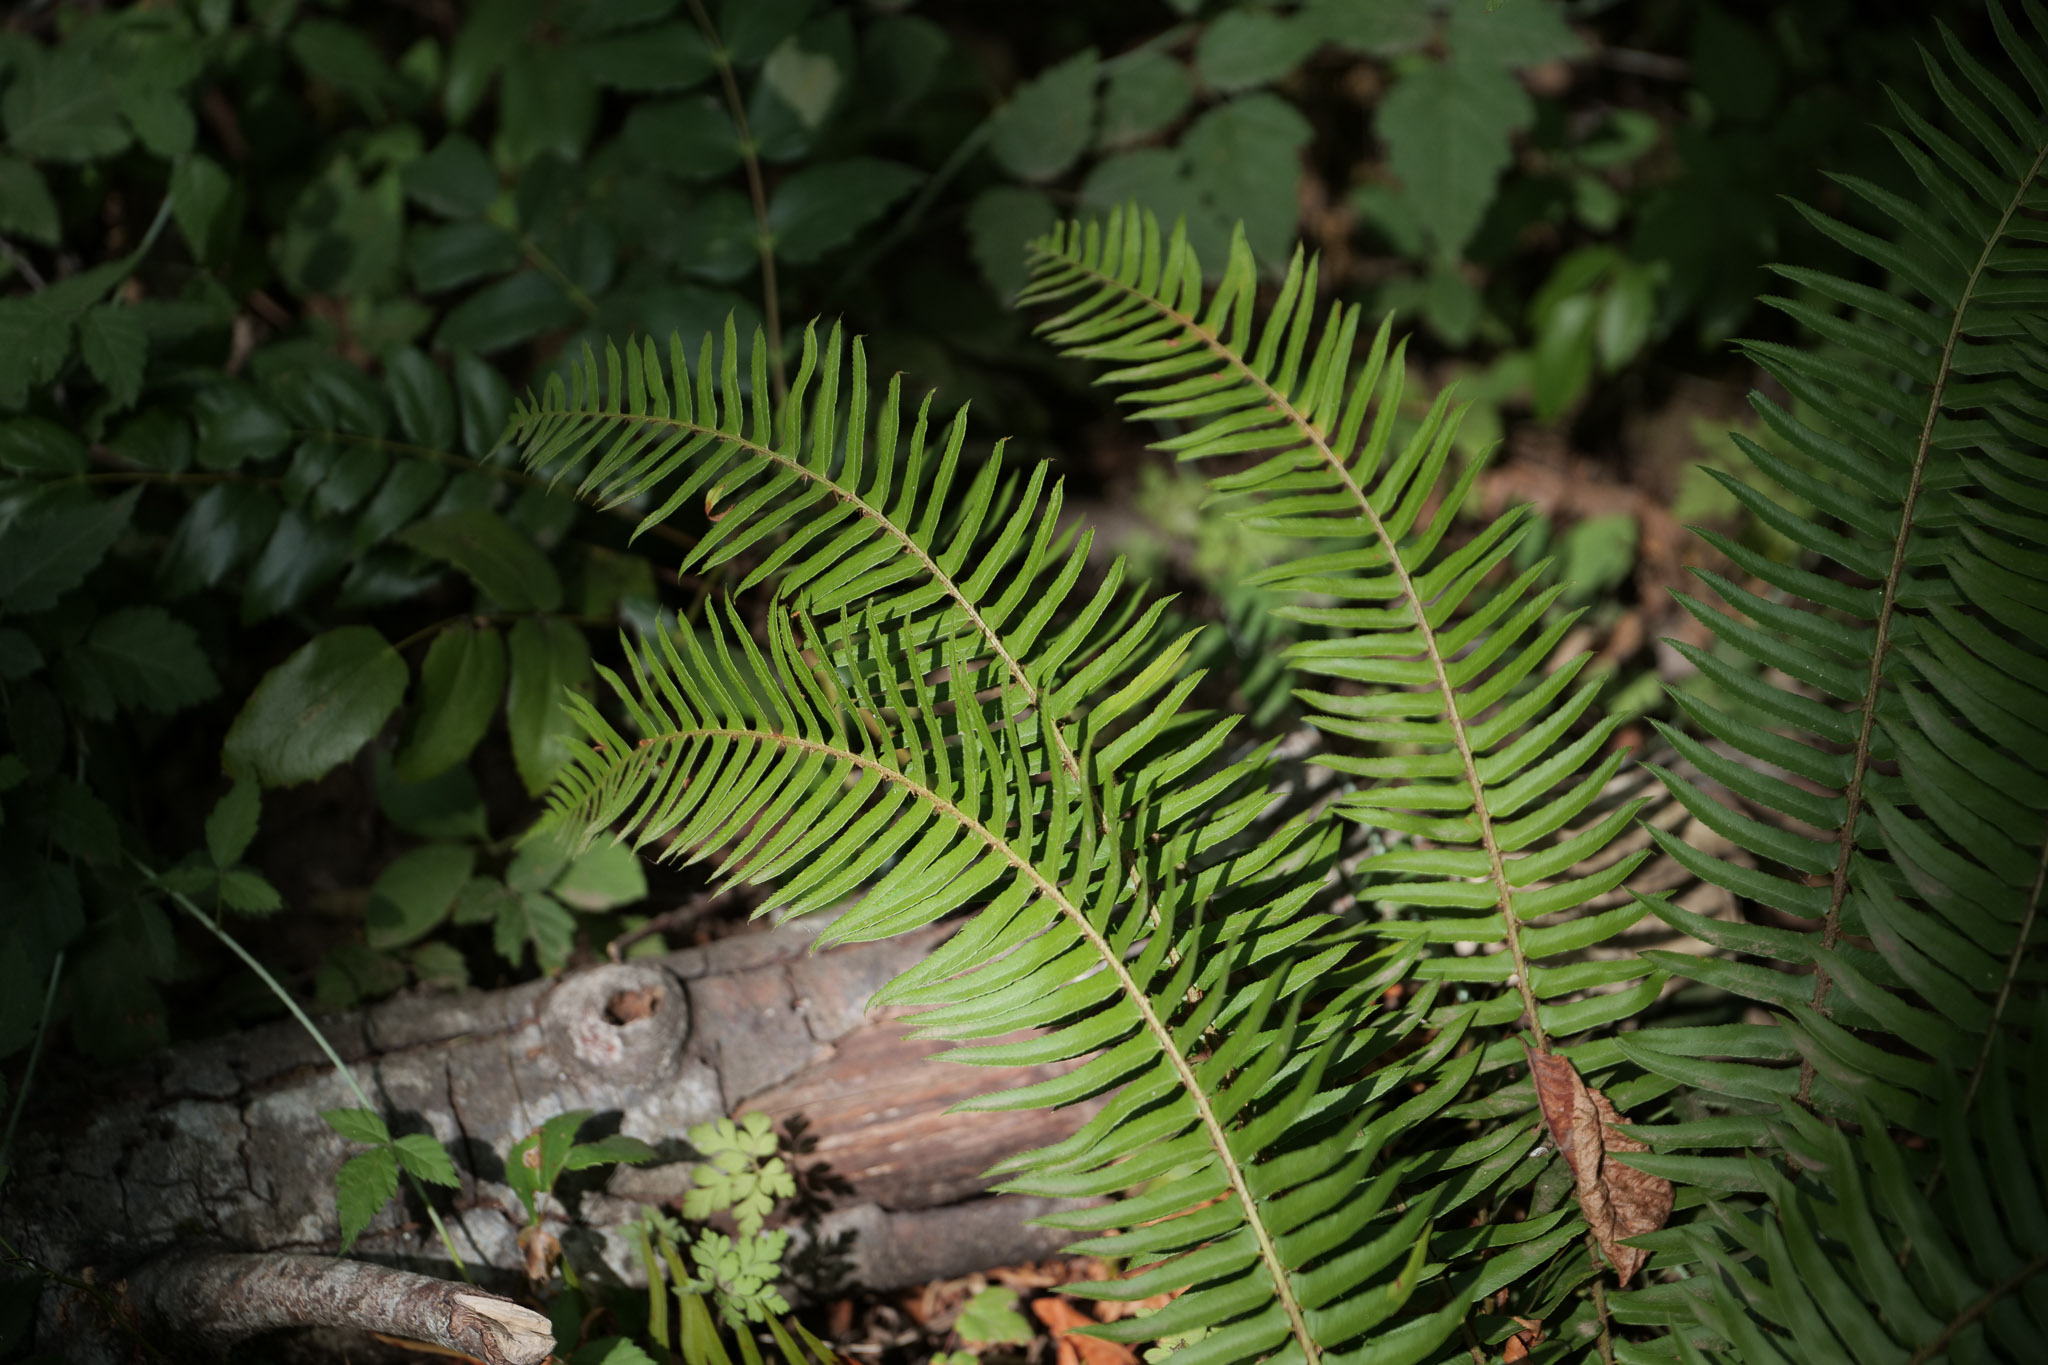 Photo of fern with dramatic lighting shot with Panasonic Lumix S5